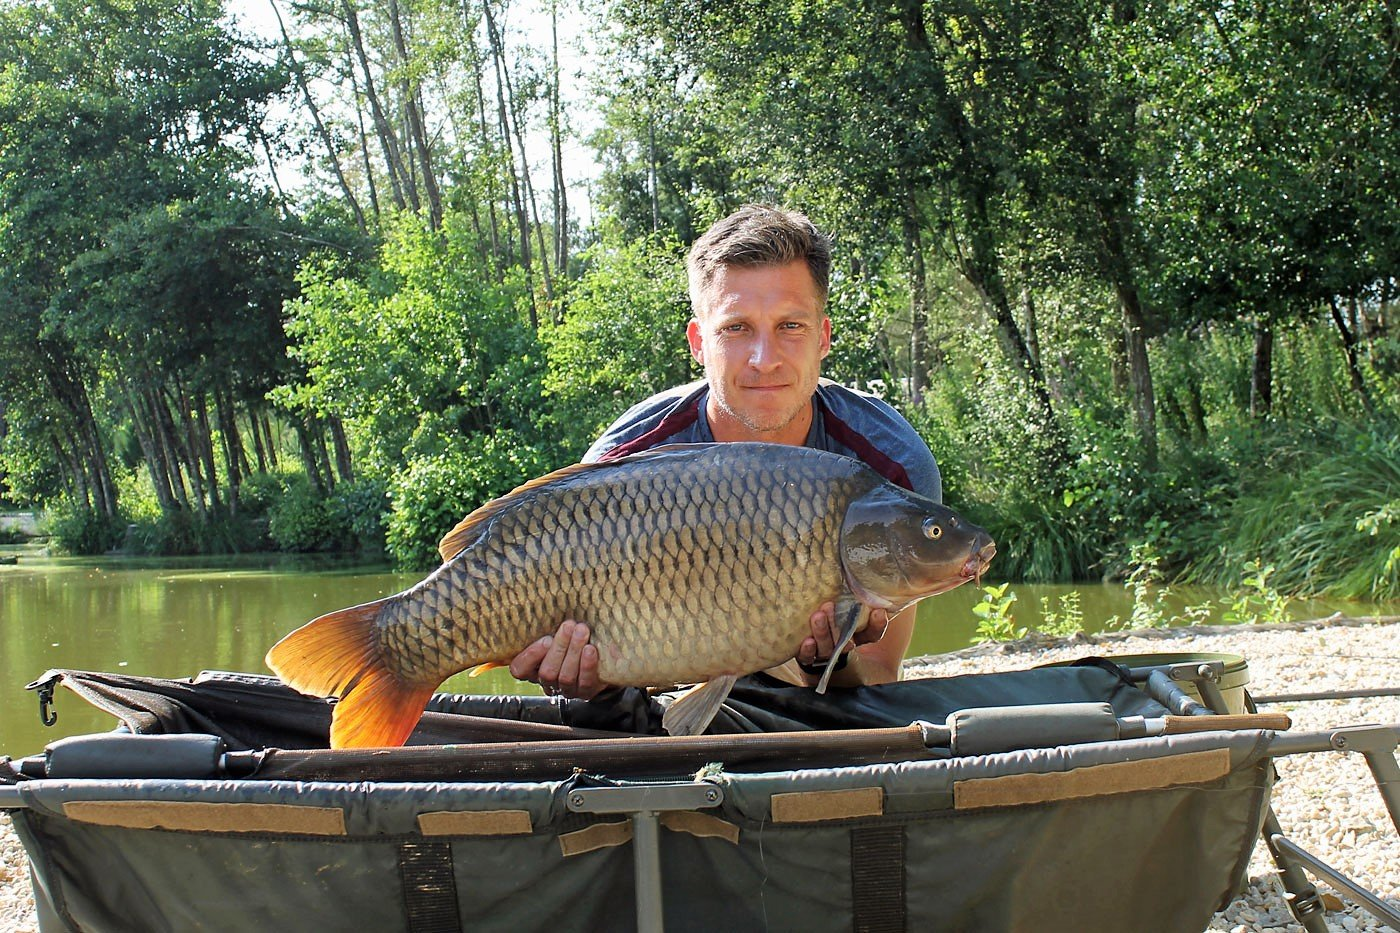 Jon with a 30lb common